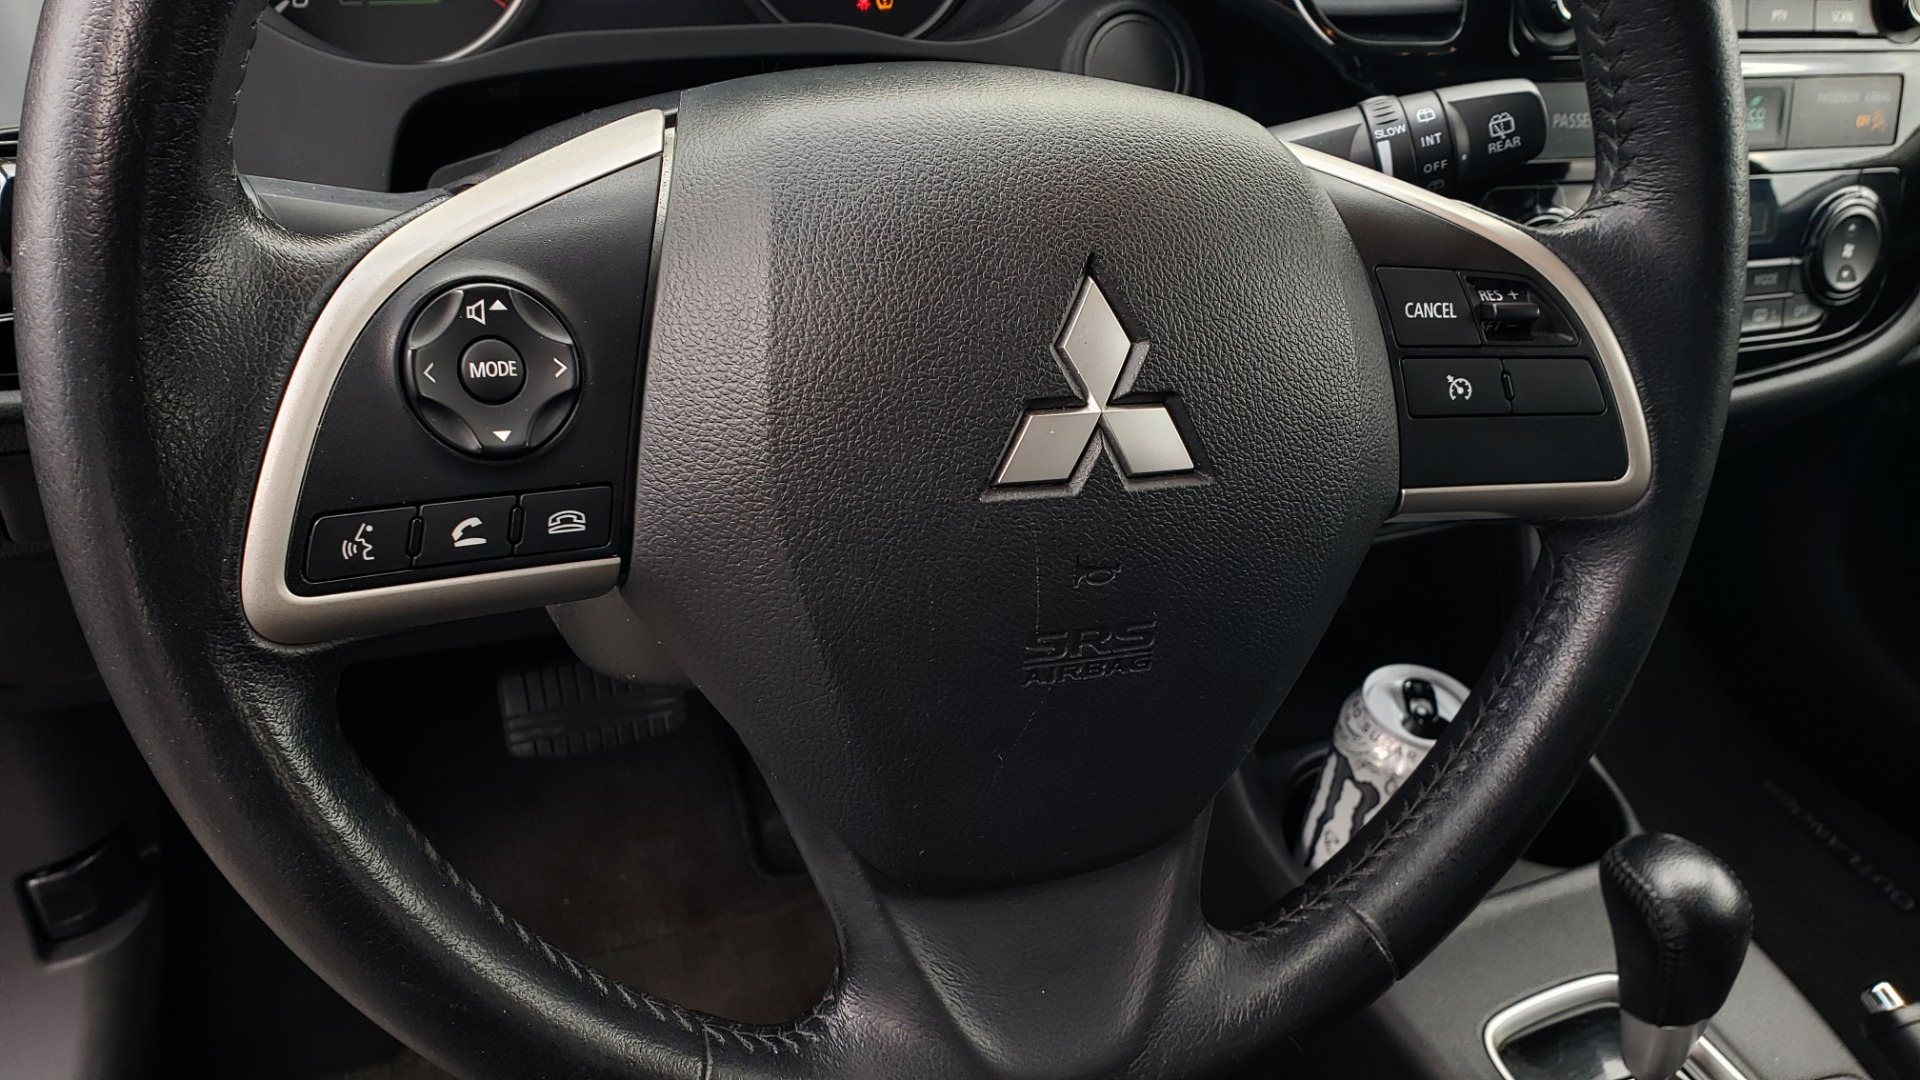 Used 2015 Mitsubishi OUTLANDER ES 2.4L SUV / CVT / FWD / KEYLESS ENTRY / 16-IN WHEELS for sale $12,995 at Formula Imports in Charlotte NC 28227 29